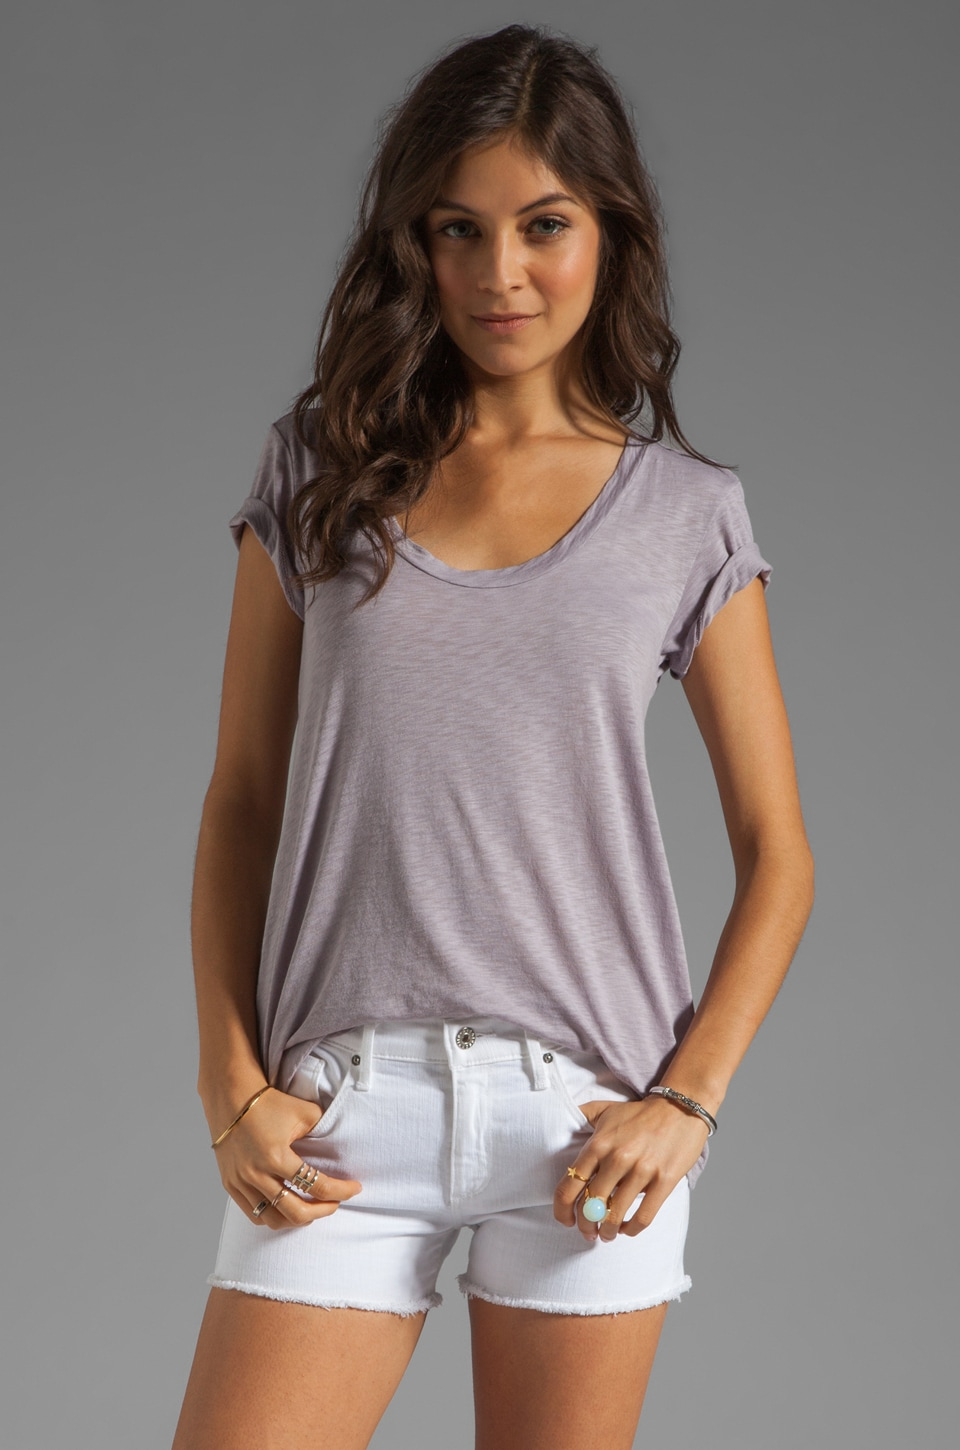 Velvet by Graham & Spencer Koren Luxe Slub Tee in Whale